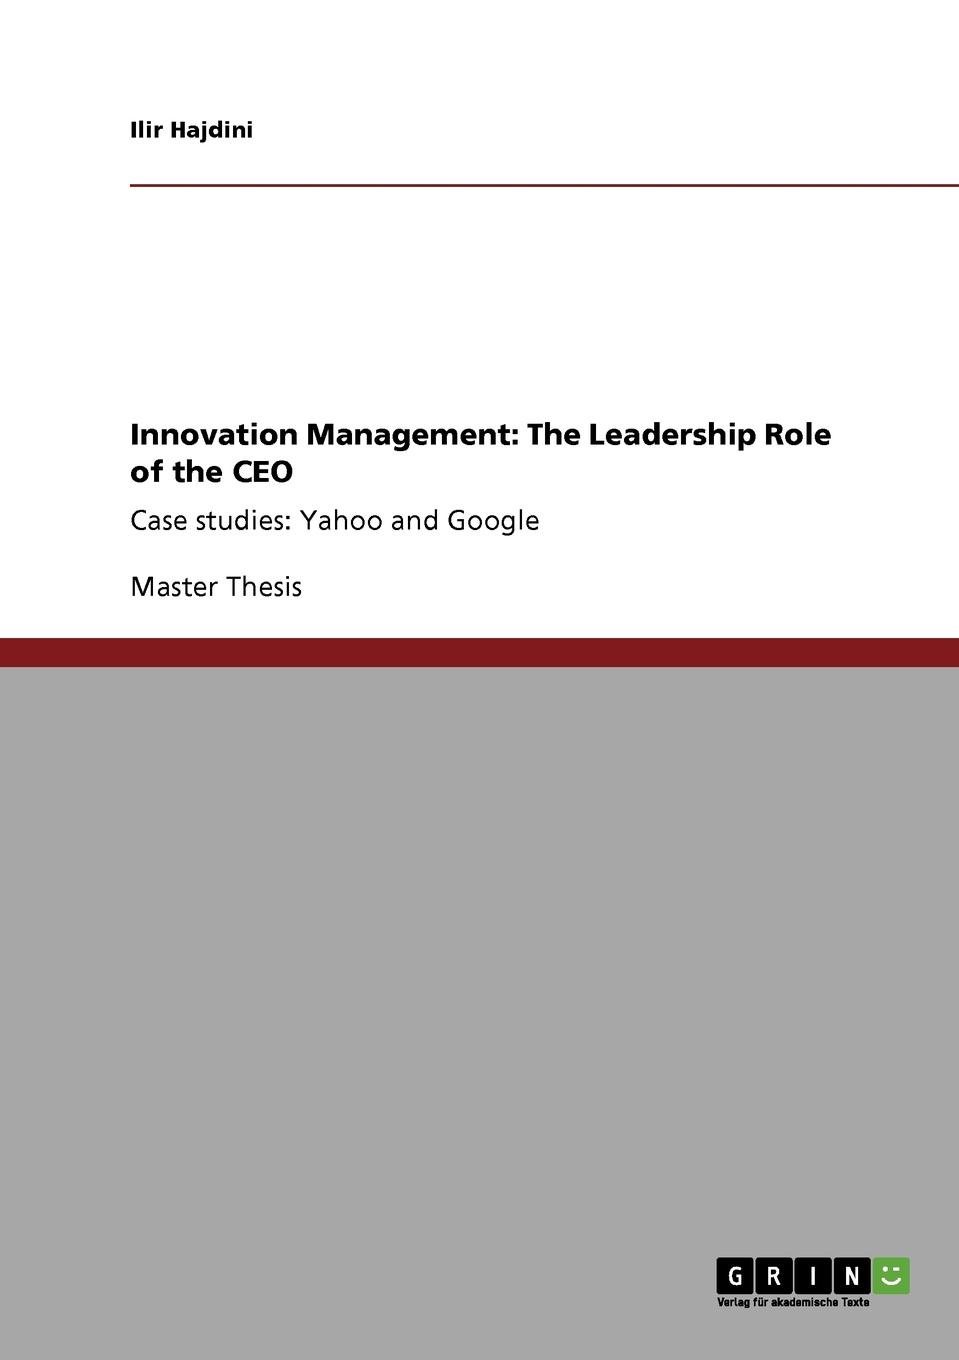 Ilir Hajdini Innovation Management. The Leadership Role of the CEO knowledge and innovation dilemmas